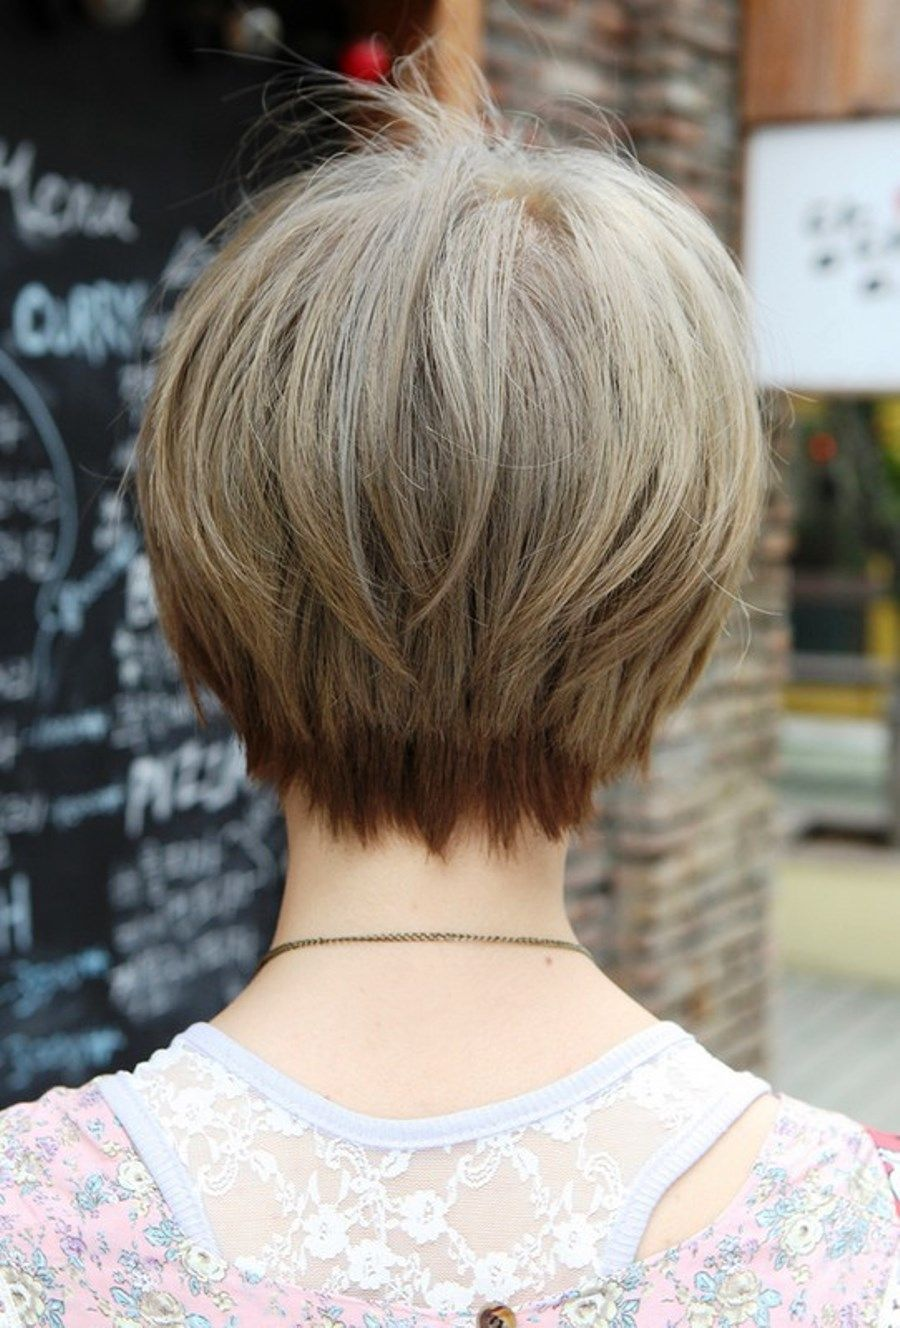 Bob haircuts back view - Check Out Long Bob Haircuts Back View Usually When You Are Choosing The Next